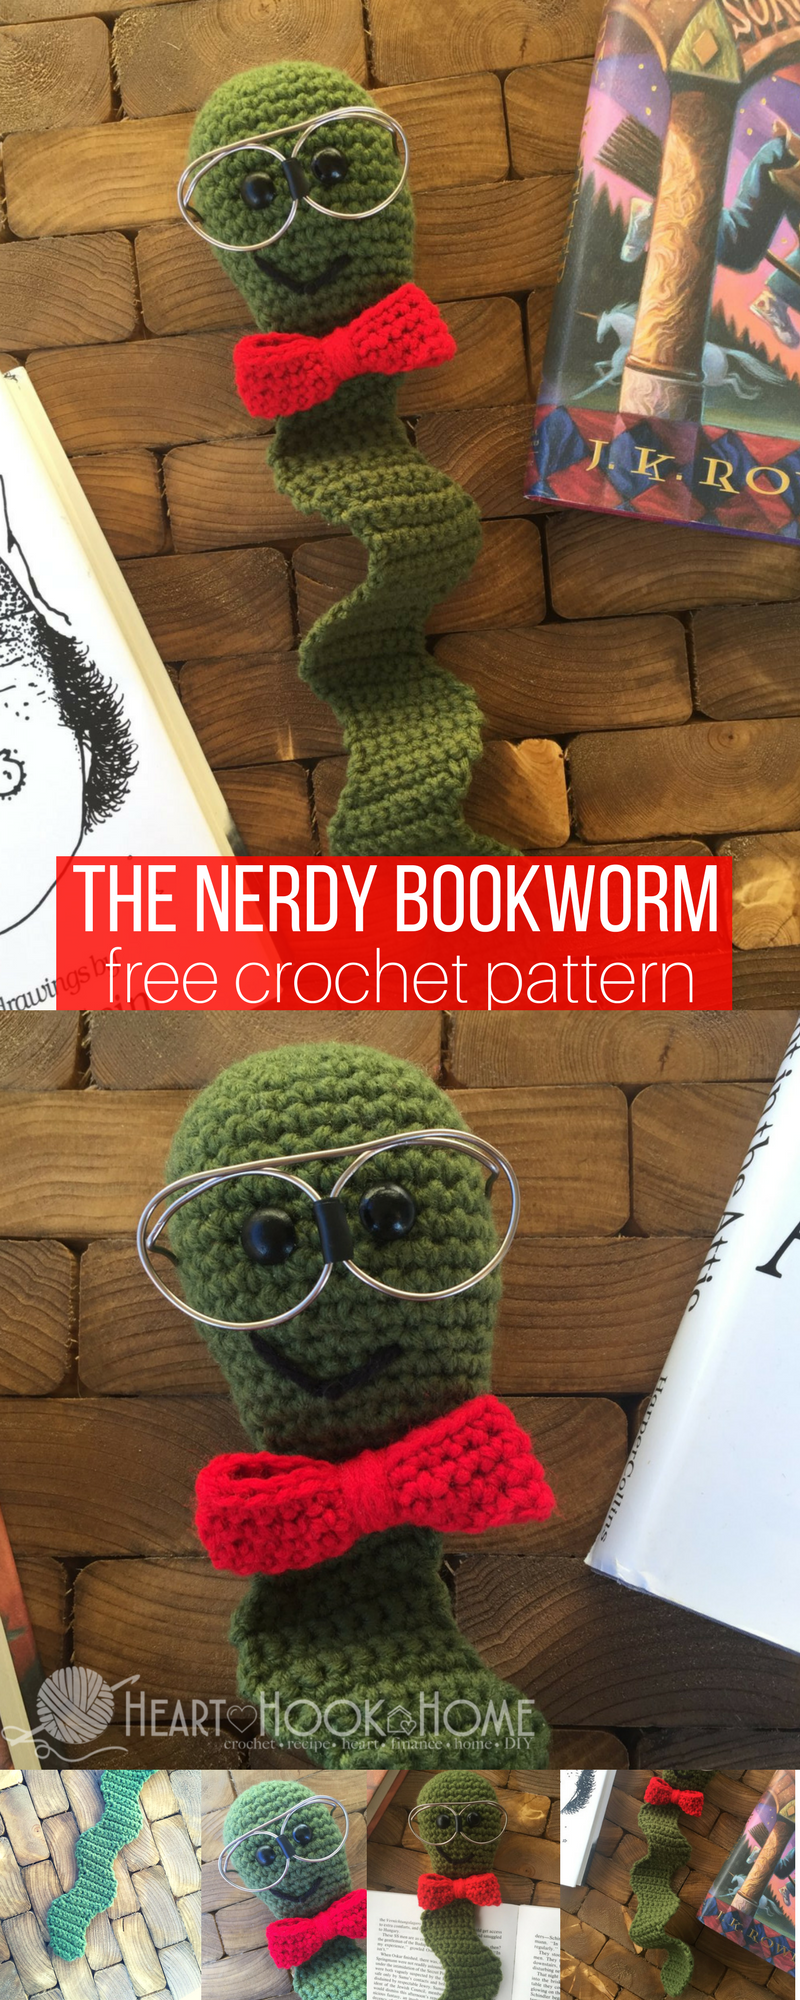 Libros De Ganchillo This Nerdy Bookworm Bookmark Is Simply Adorable Crochet